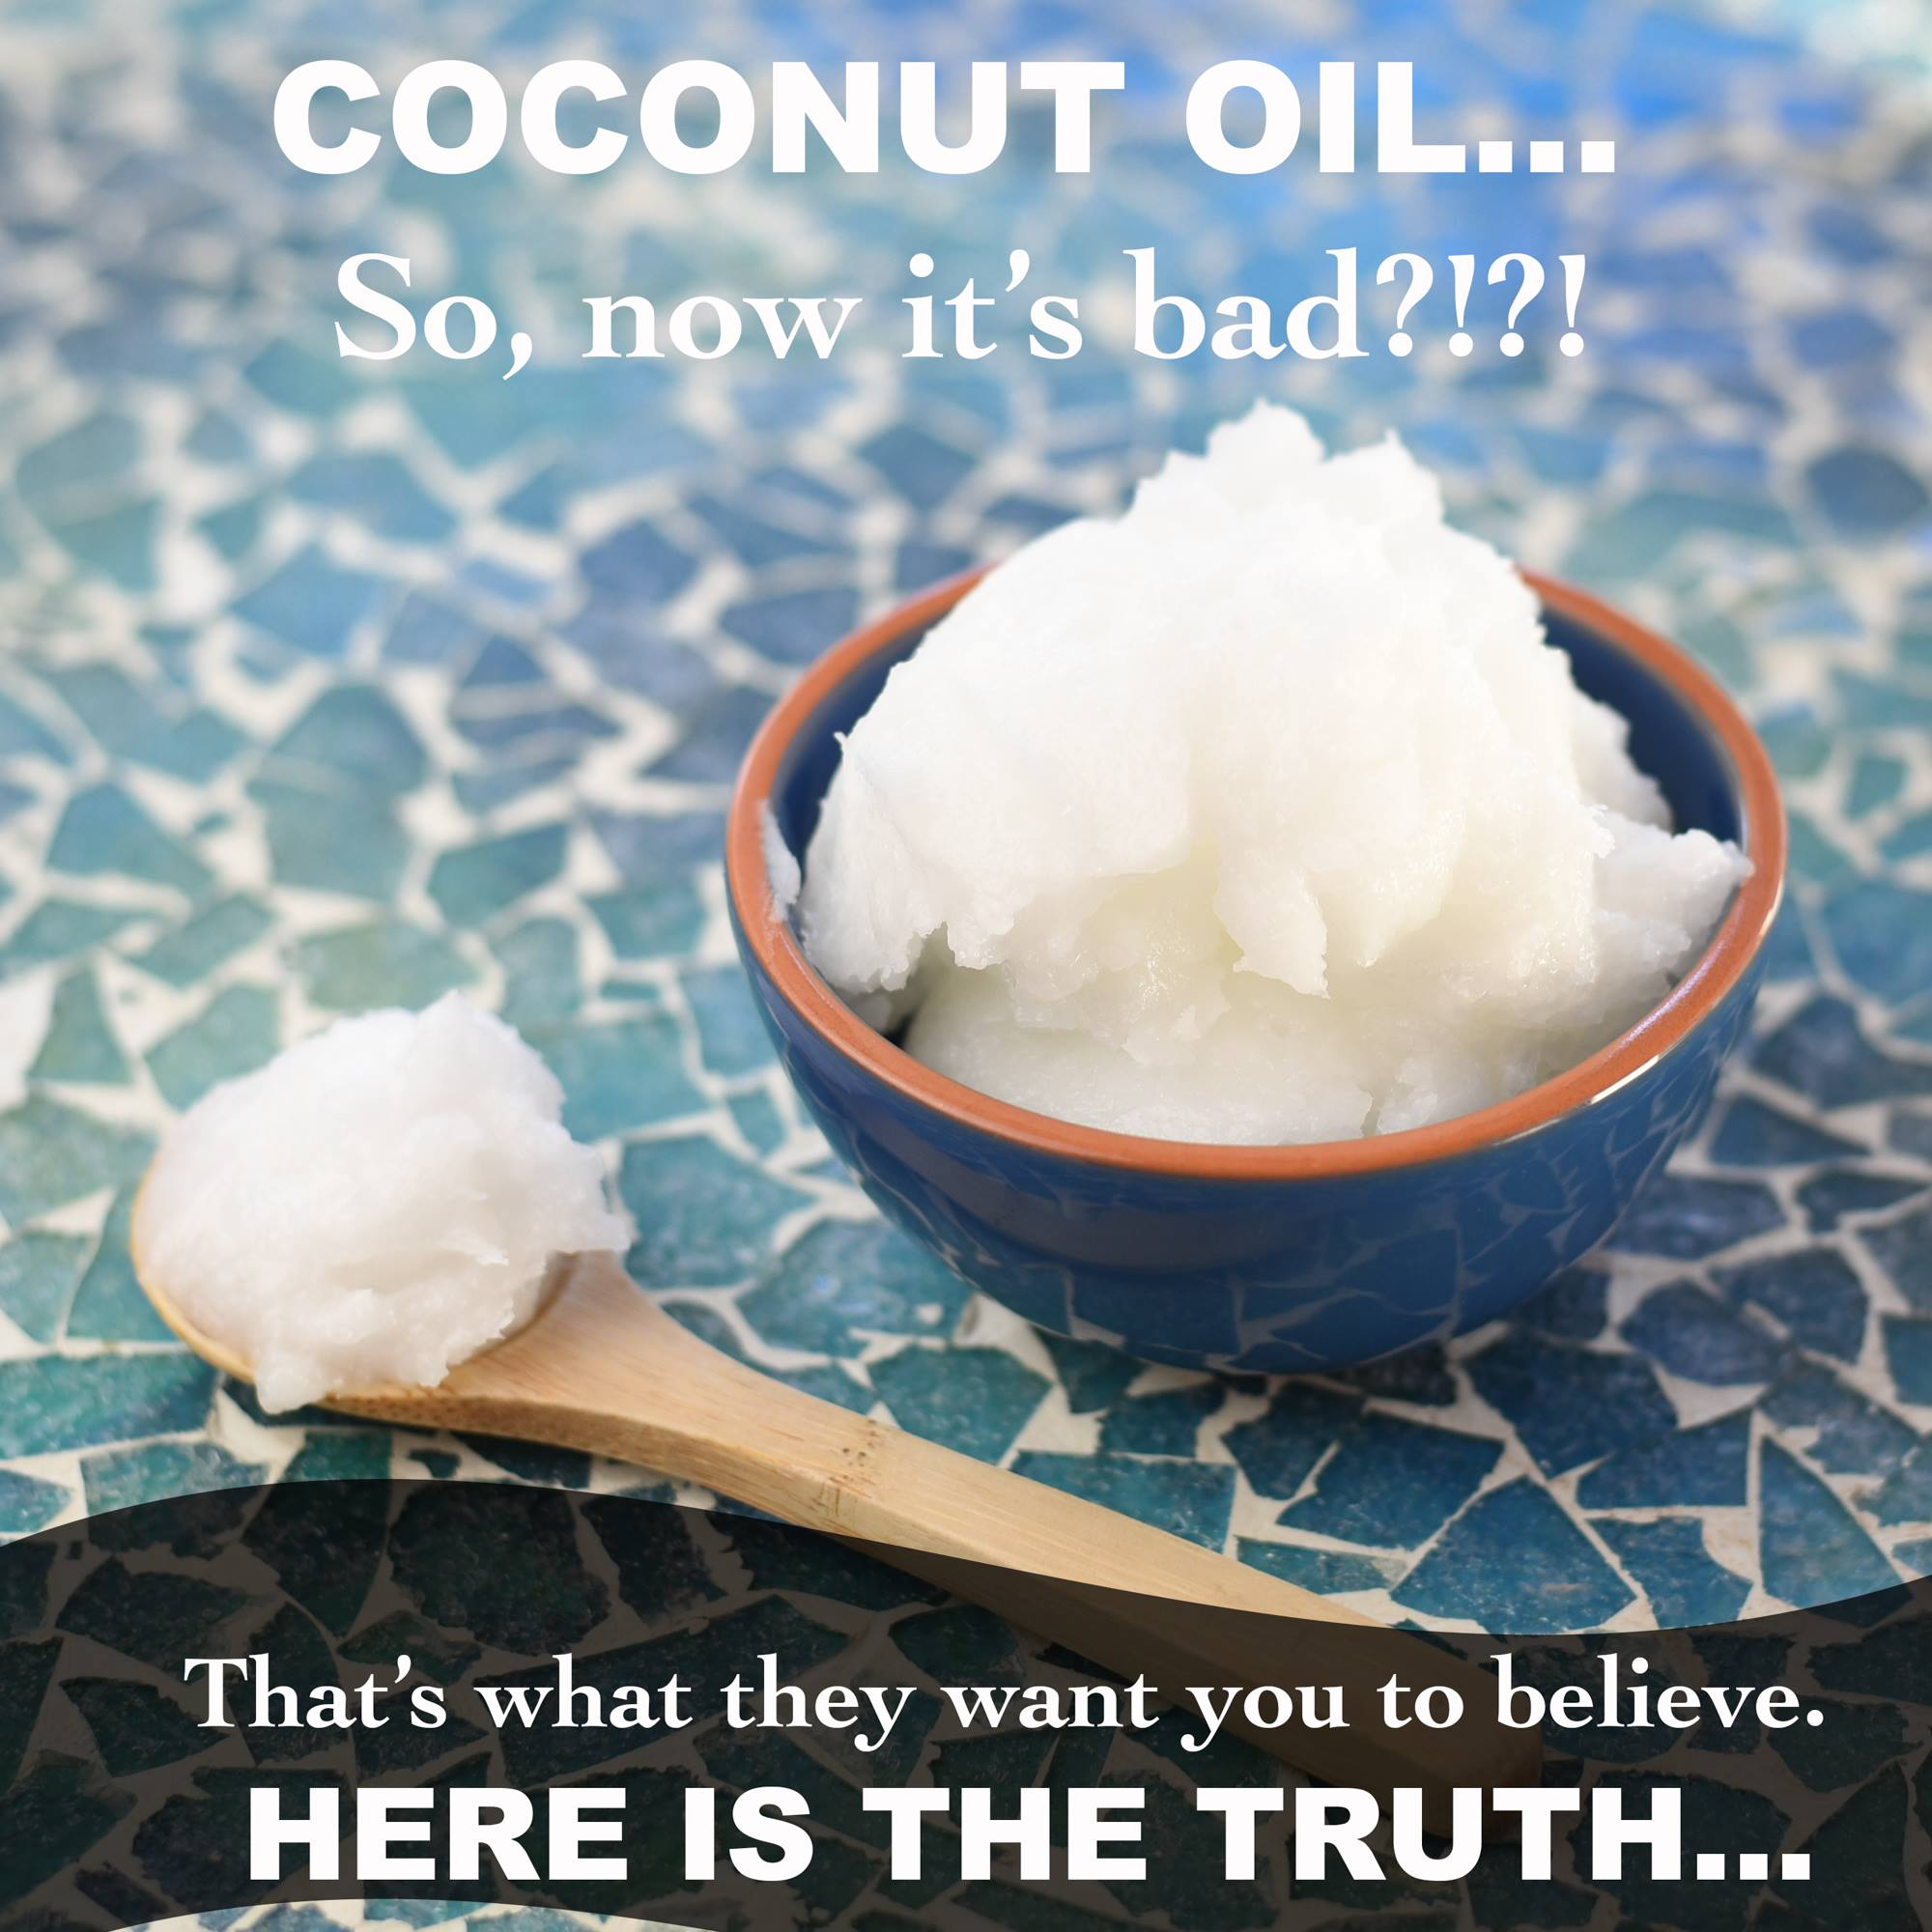 COCONUTOILARTICLE